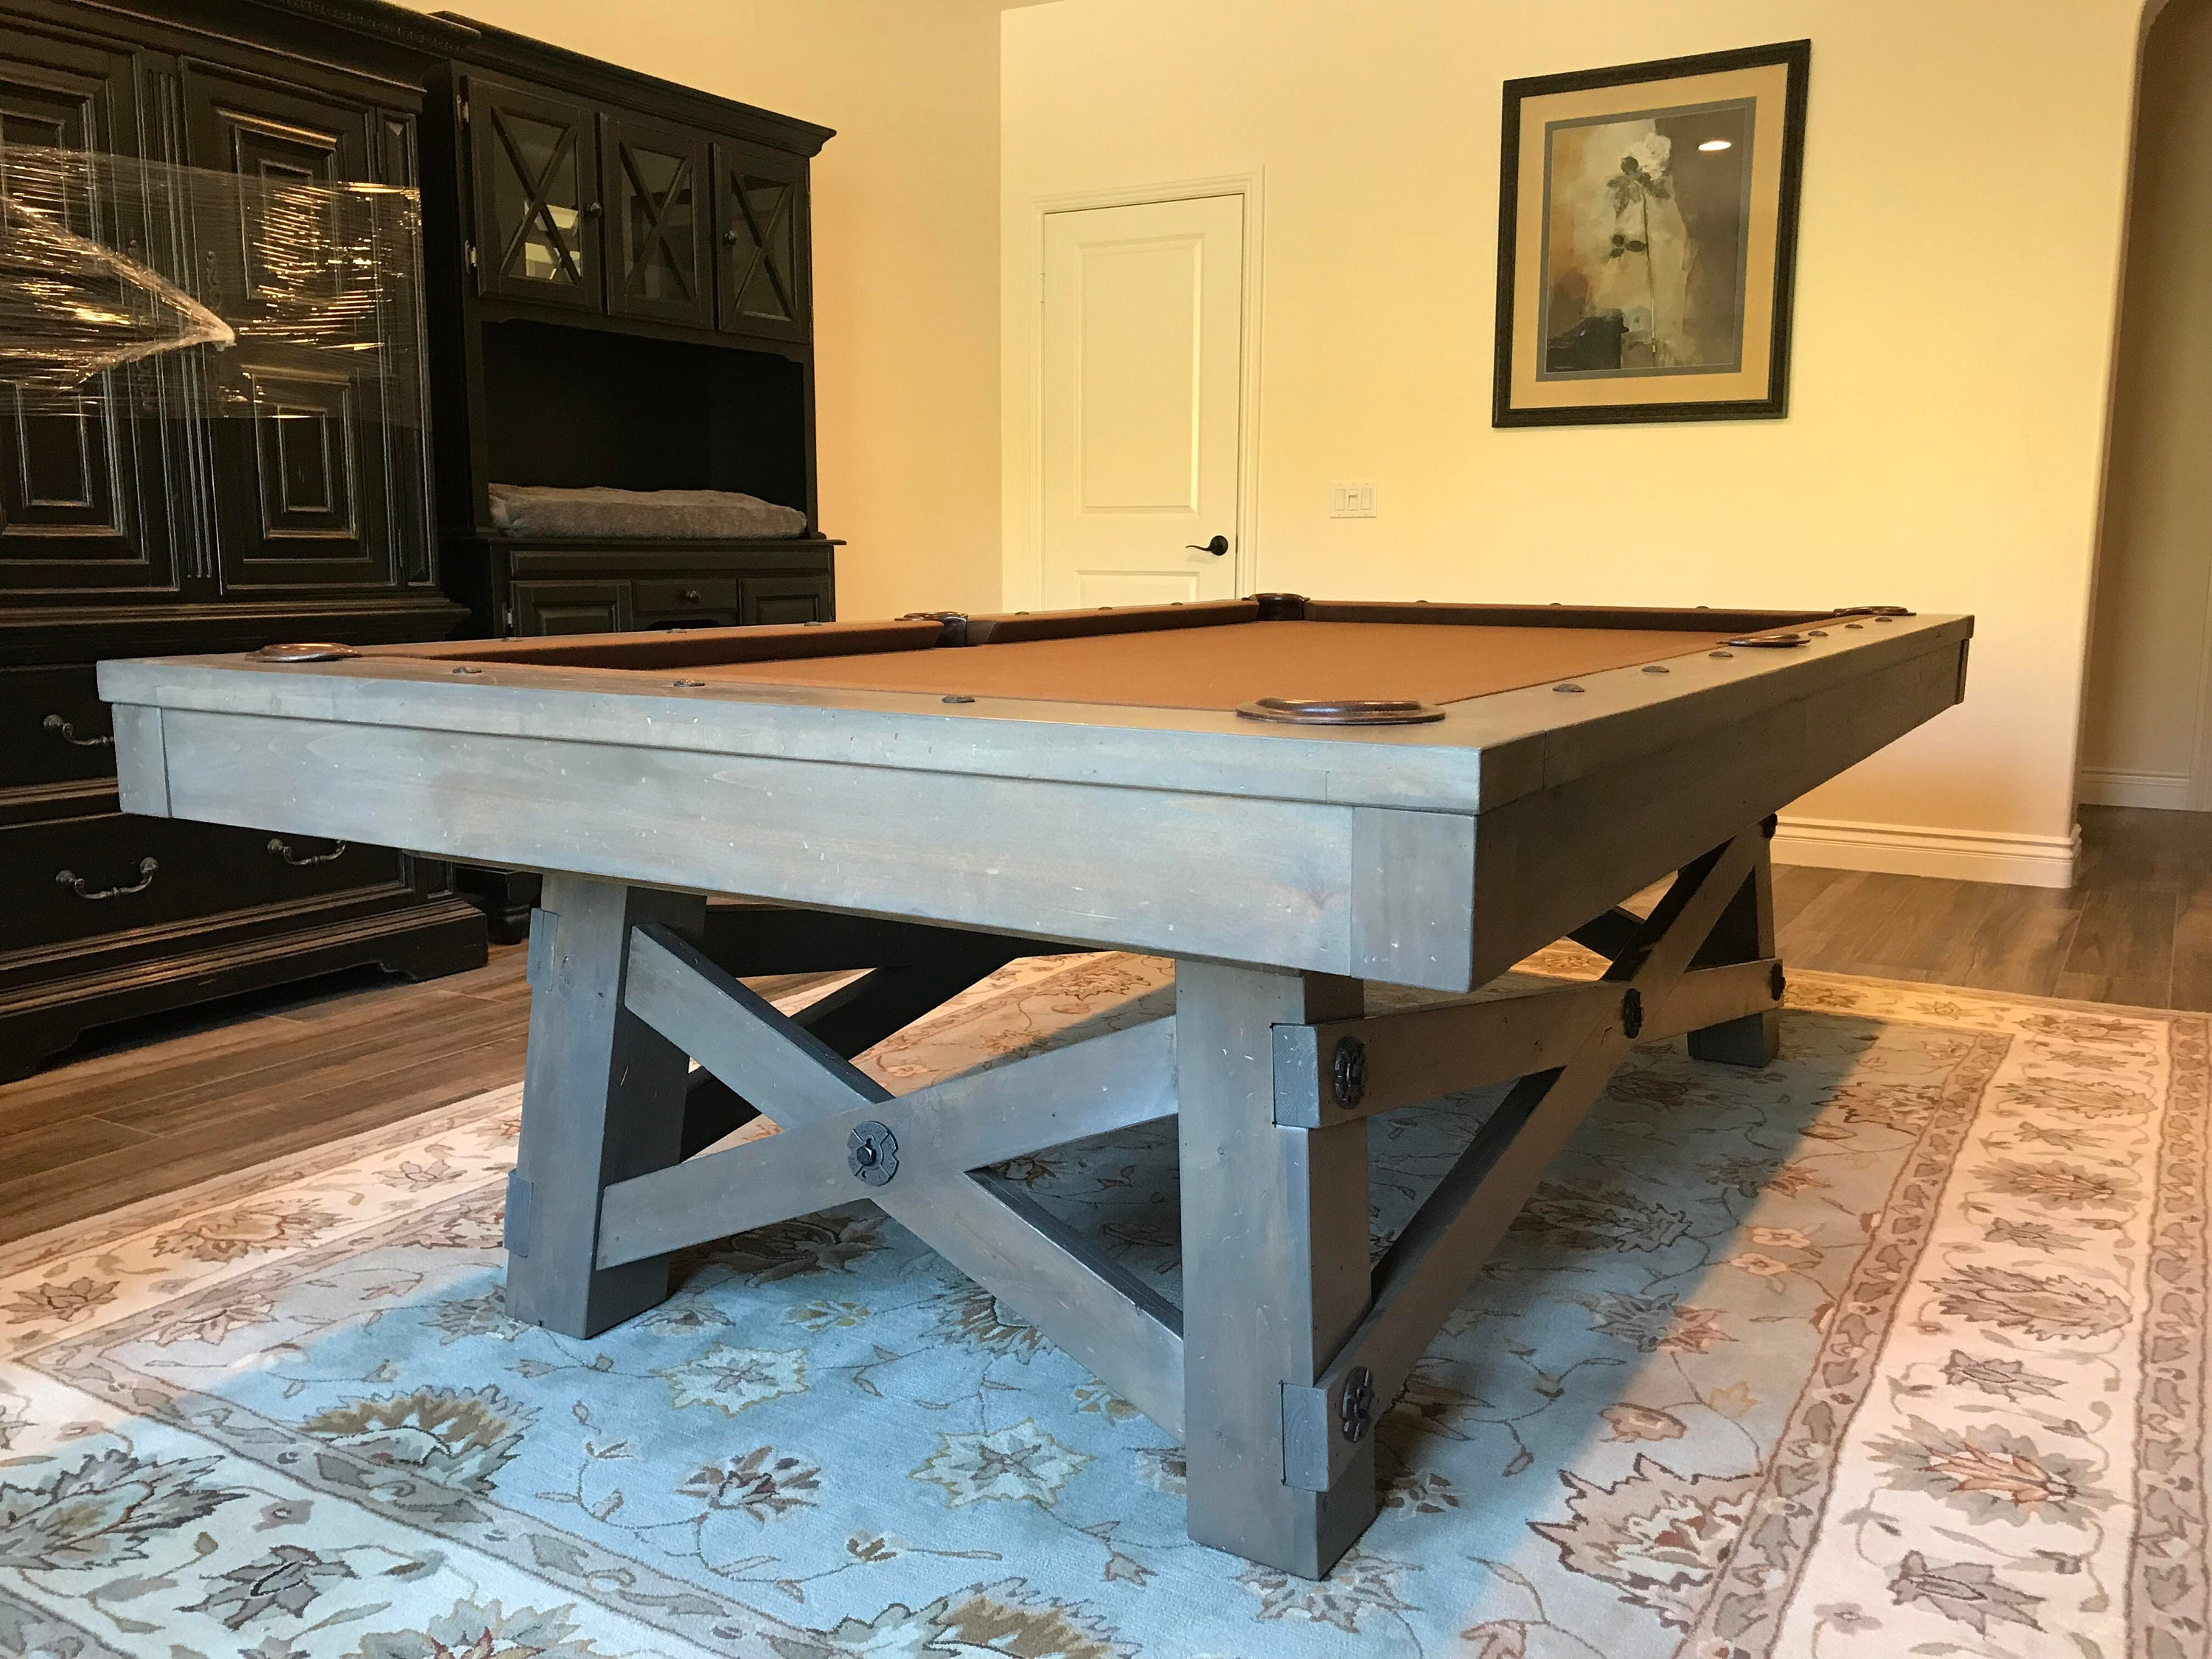 Billiards Pool Table Pool Game Man Cave Mancave Decor Game Room - How much room is needed for a pool table